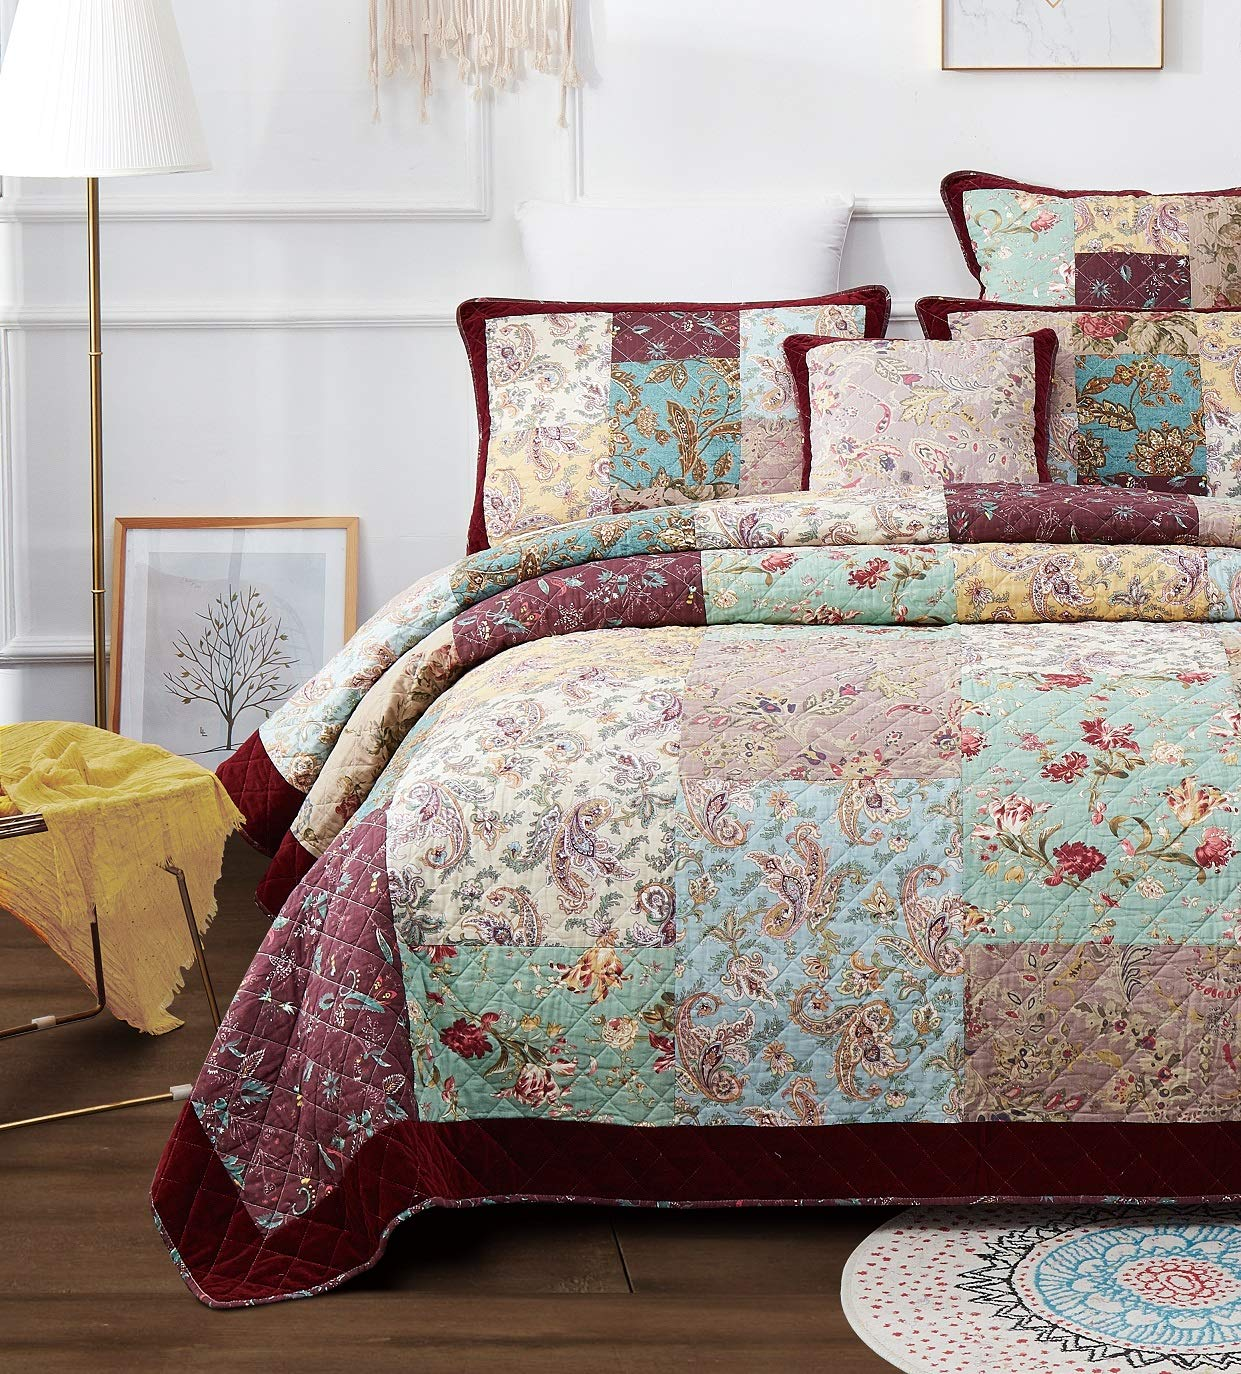 DaDa Bedding Bohemian Patchwork Bedspread - Cotton Burgundy Wine Velvety Trim - Vintage Floral Roses Paisley - Bright Vibrant Multi-Colorful Quilted Set - King - 3-Pieces